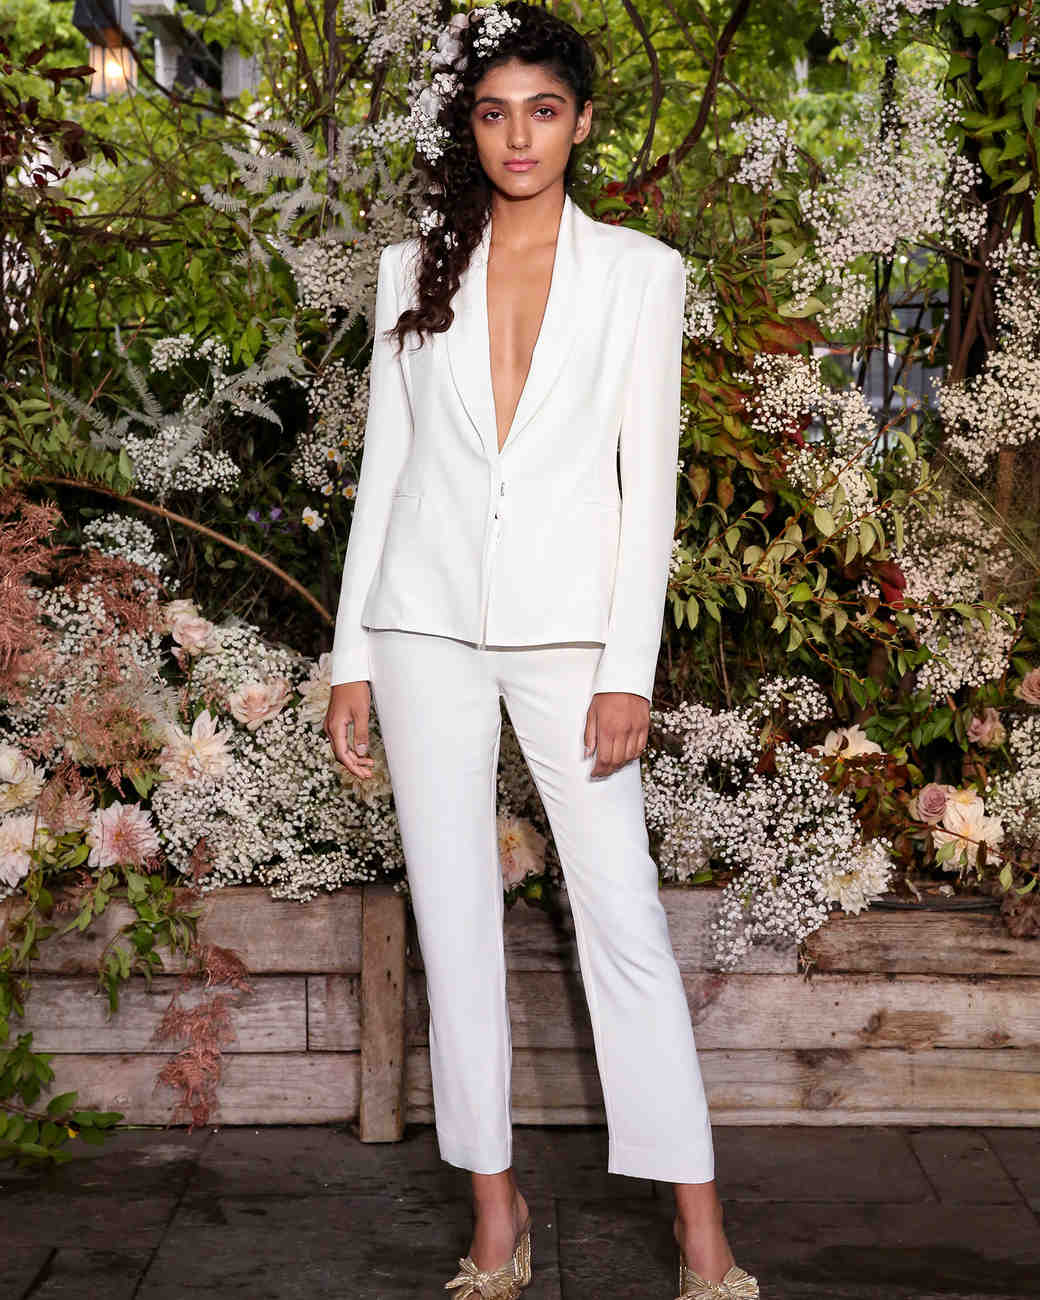 a92a6b07fa8 alexandra grecco wedding cropped pantsuit plunging neck